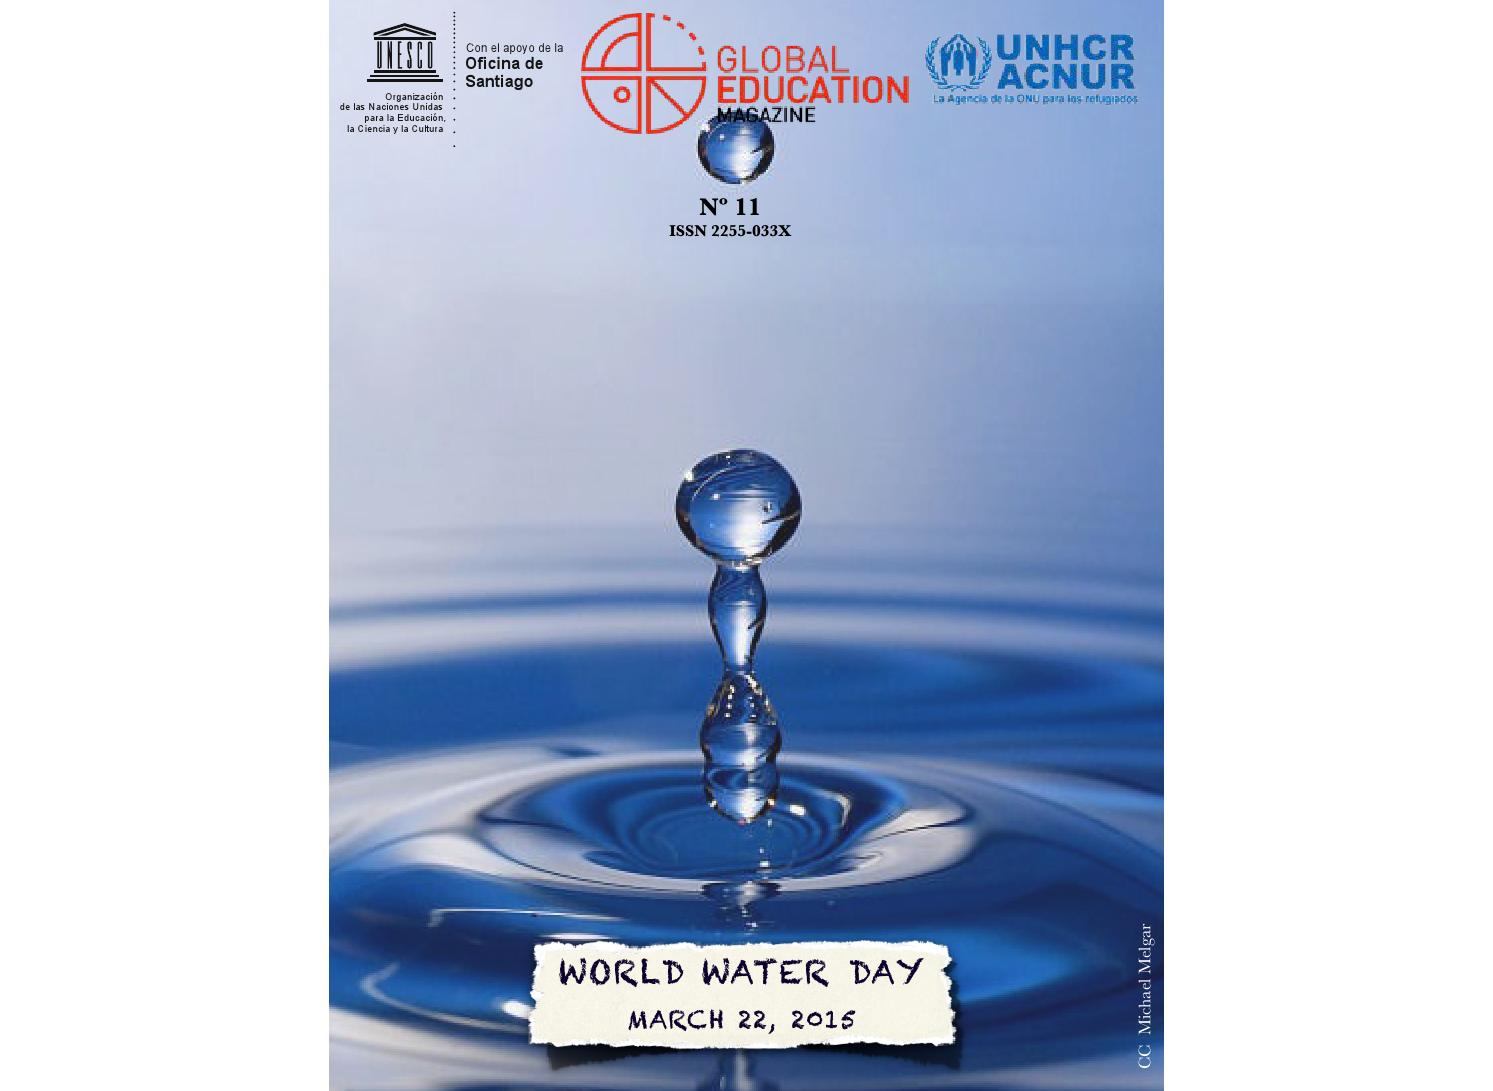 f5886a3a6 Global Education Magazine: World Water Day by Global Education Magazine -  issuu